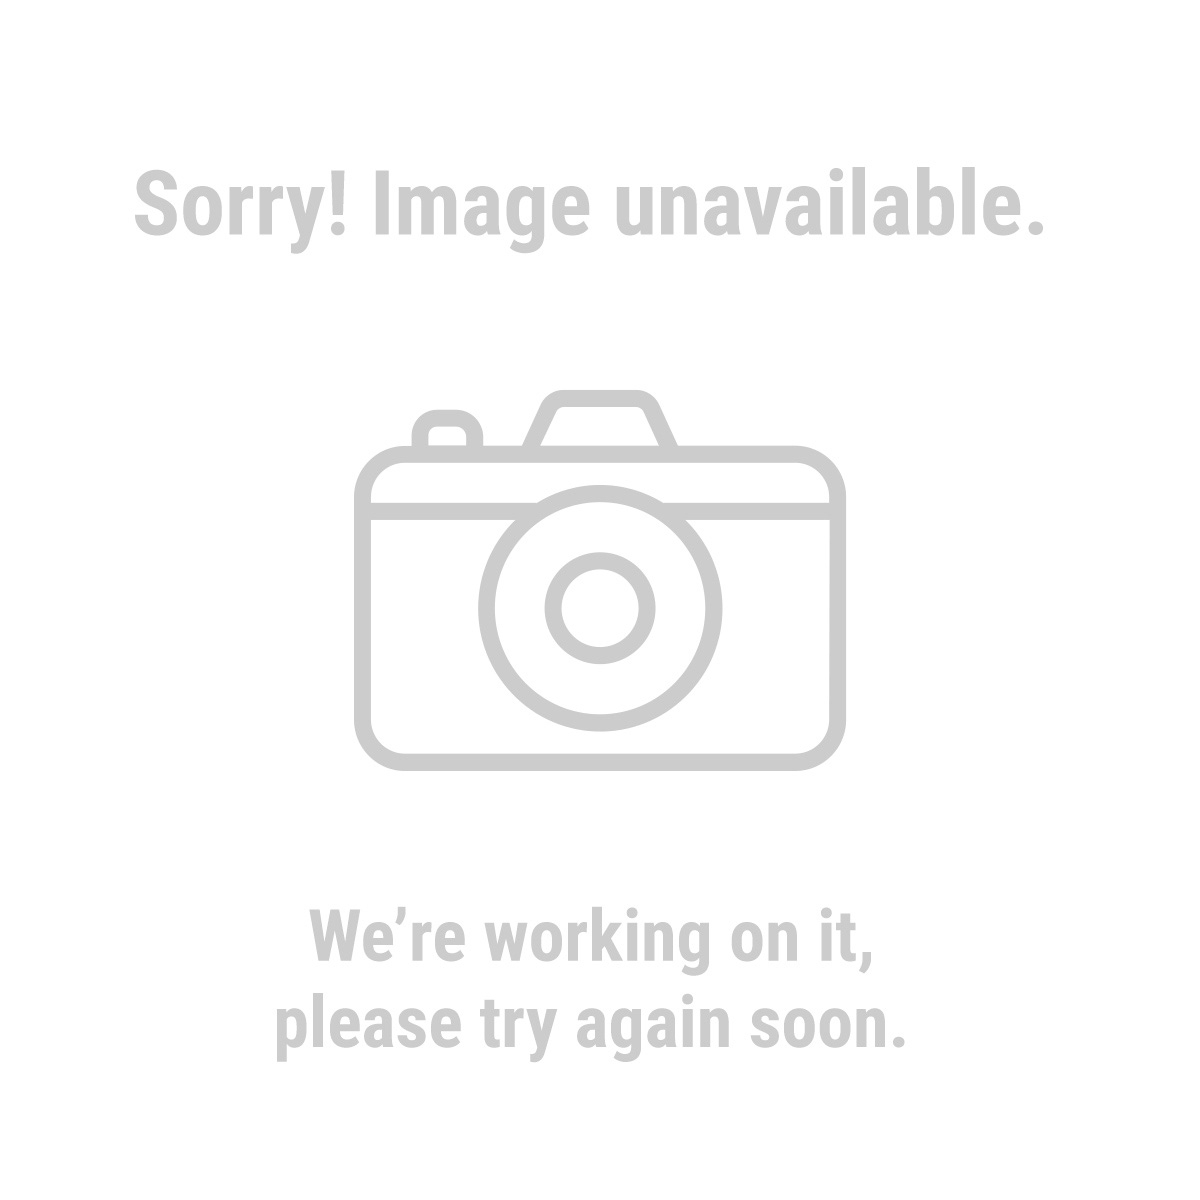 Central Pneumatic 68057 18/16 Gauge 3-in-1 Air Nailer/Stapler